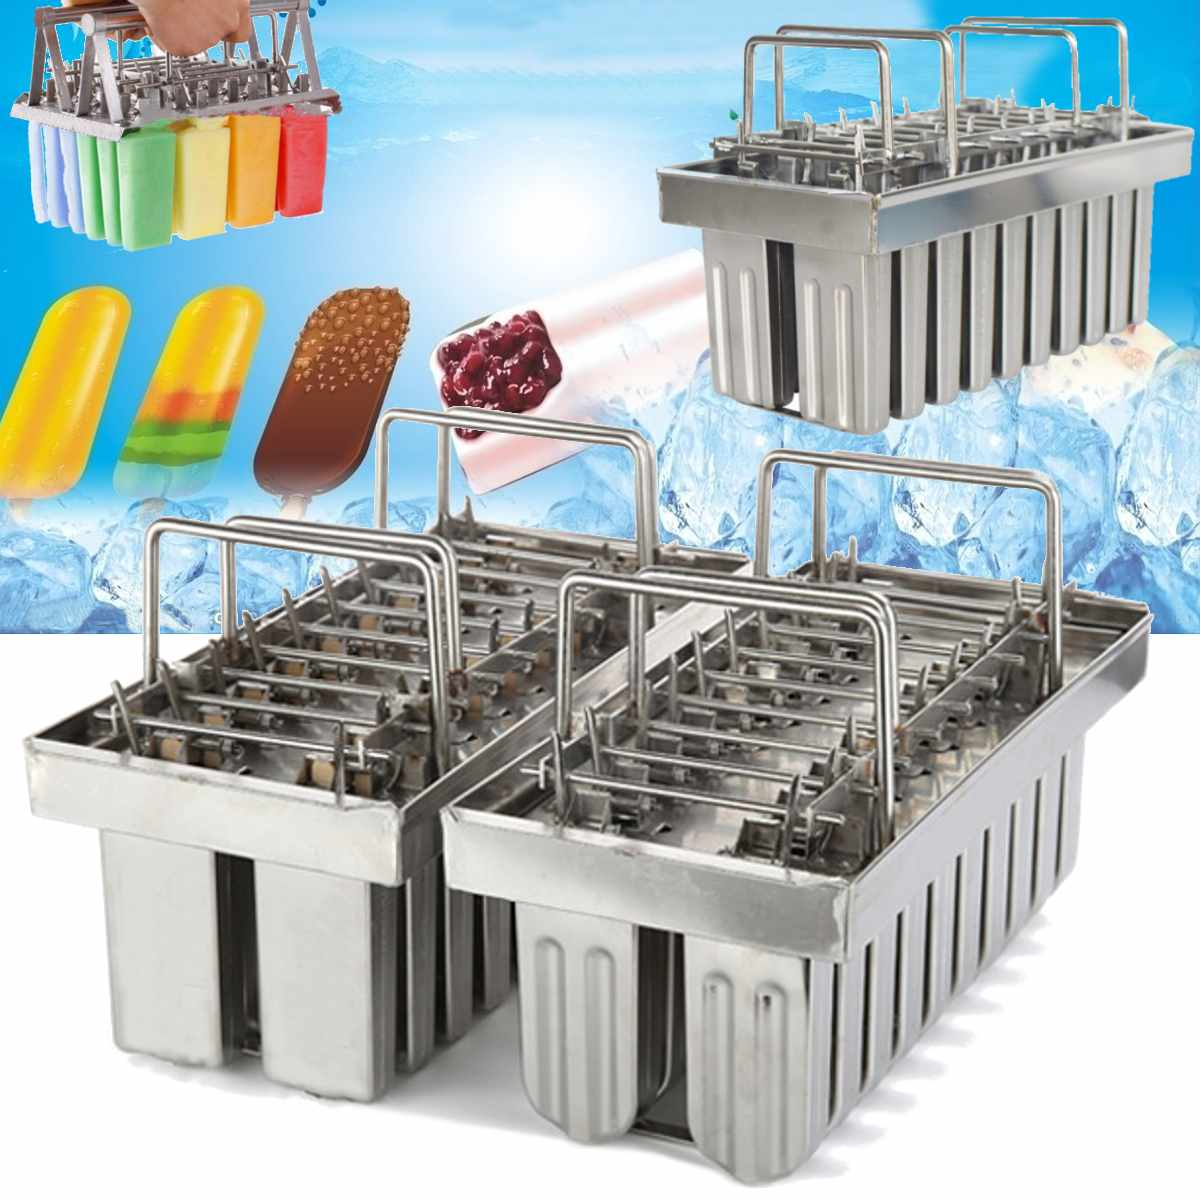 20 Molds Stainless Steel DIY Ice Cream Mould Popsicle Ice Cream Make Tool Silver Home Ice Cream Maker Stick Holder Mould New|Ice Cream Makers| |  - title=